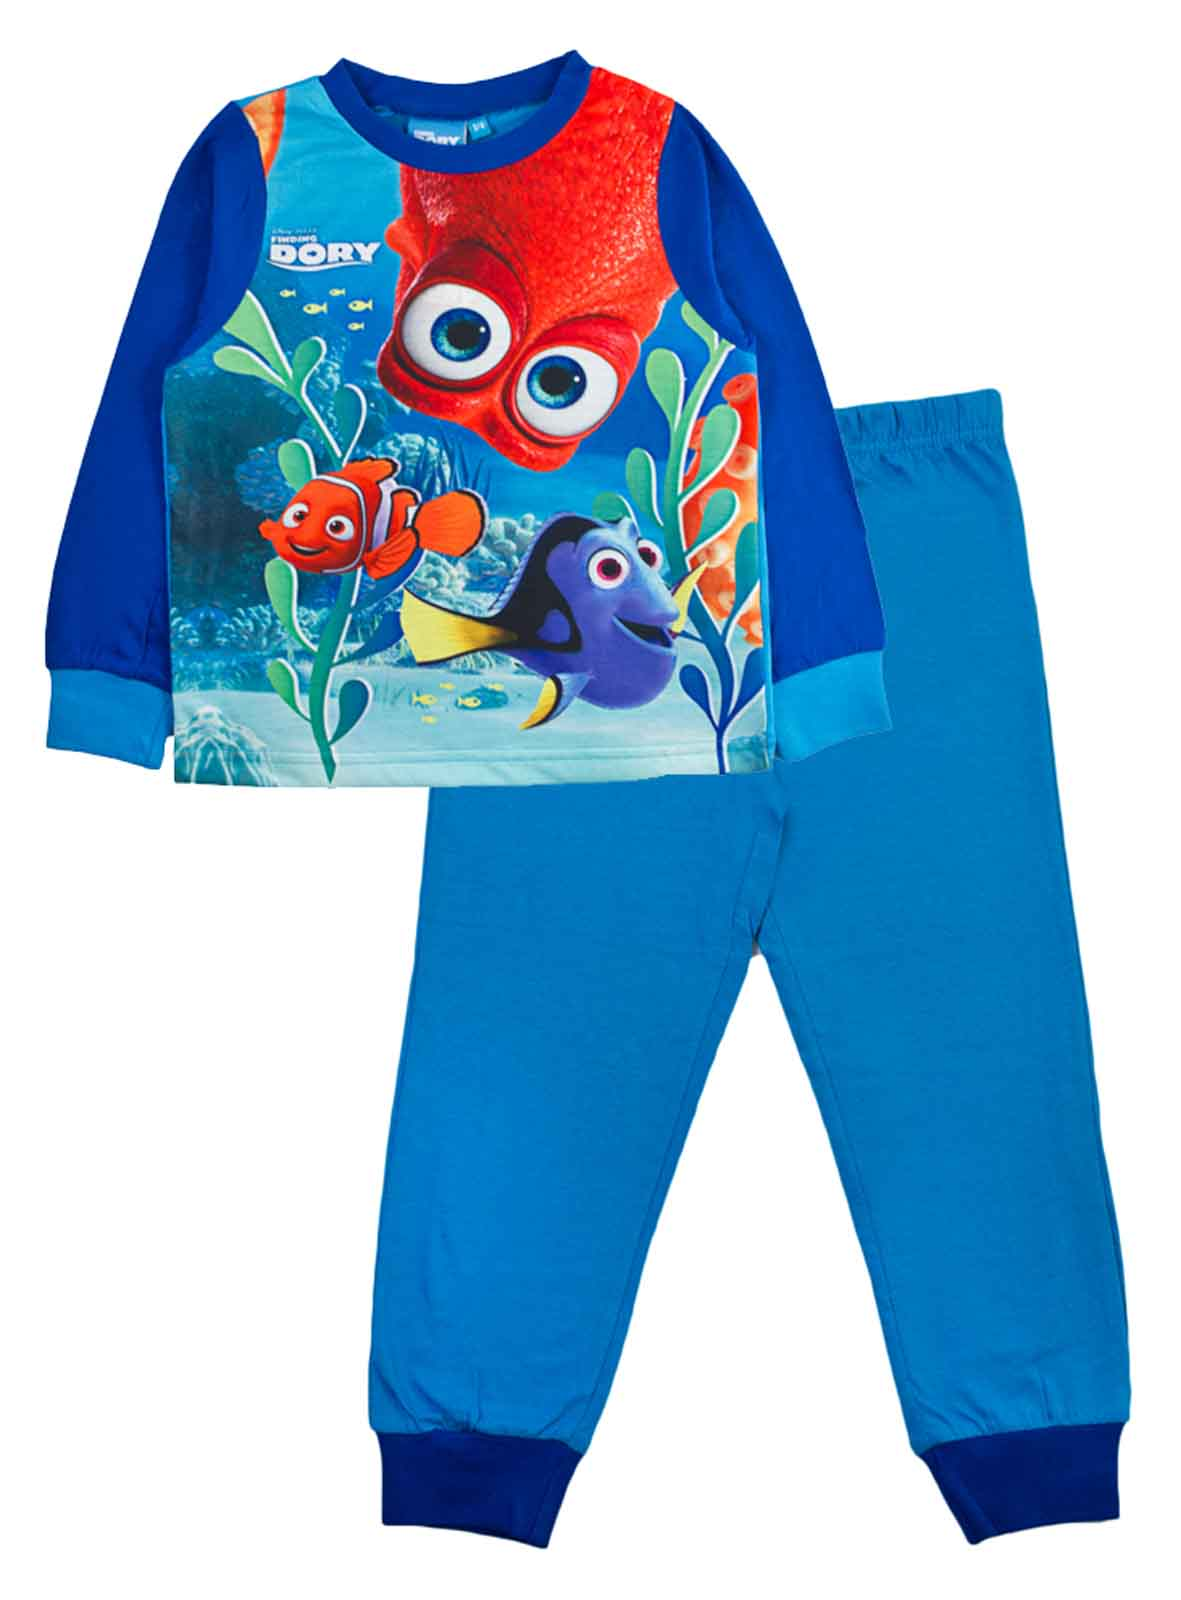 Find great deals on eBay for Boys Disney Pajamas in Boy's Sleepwear Sizes 4 and Up. Shop with confidence.